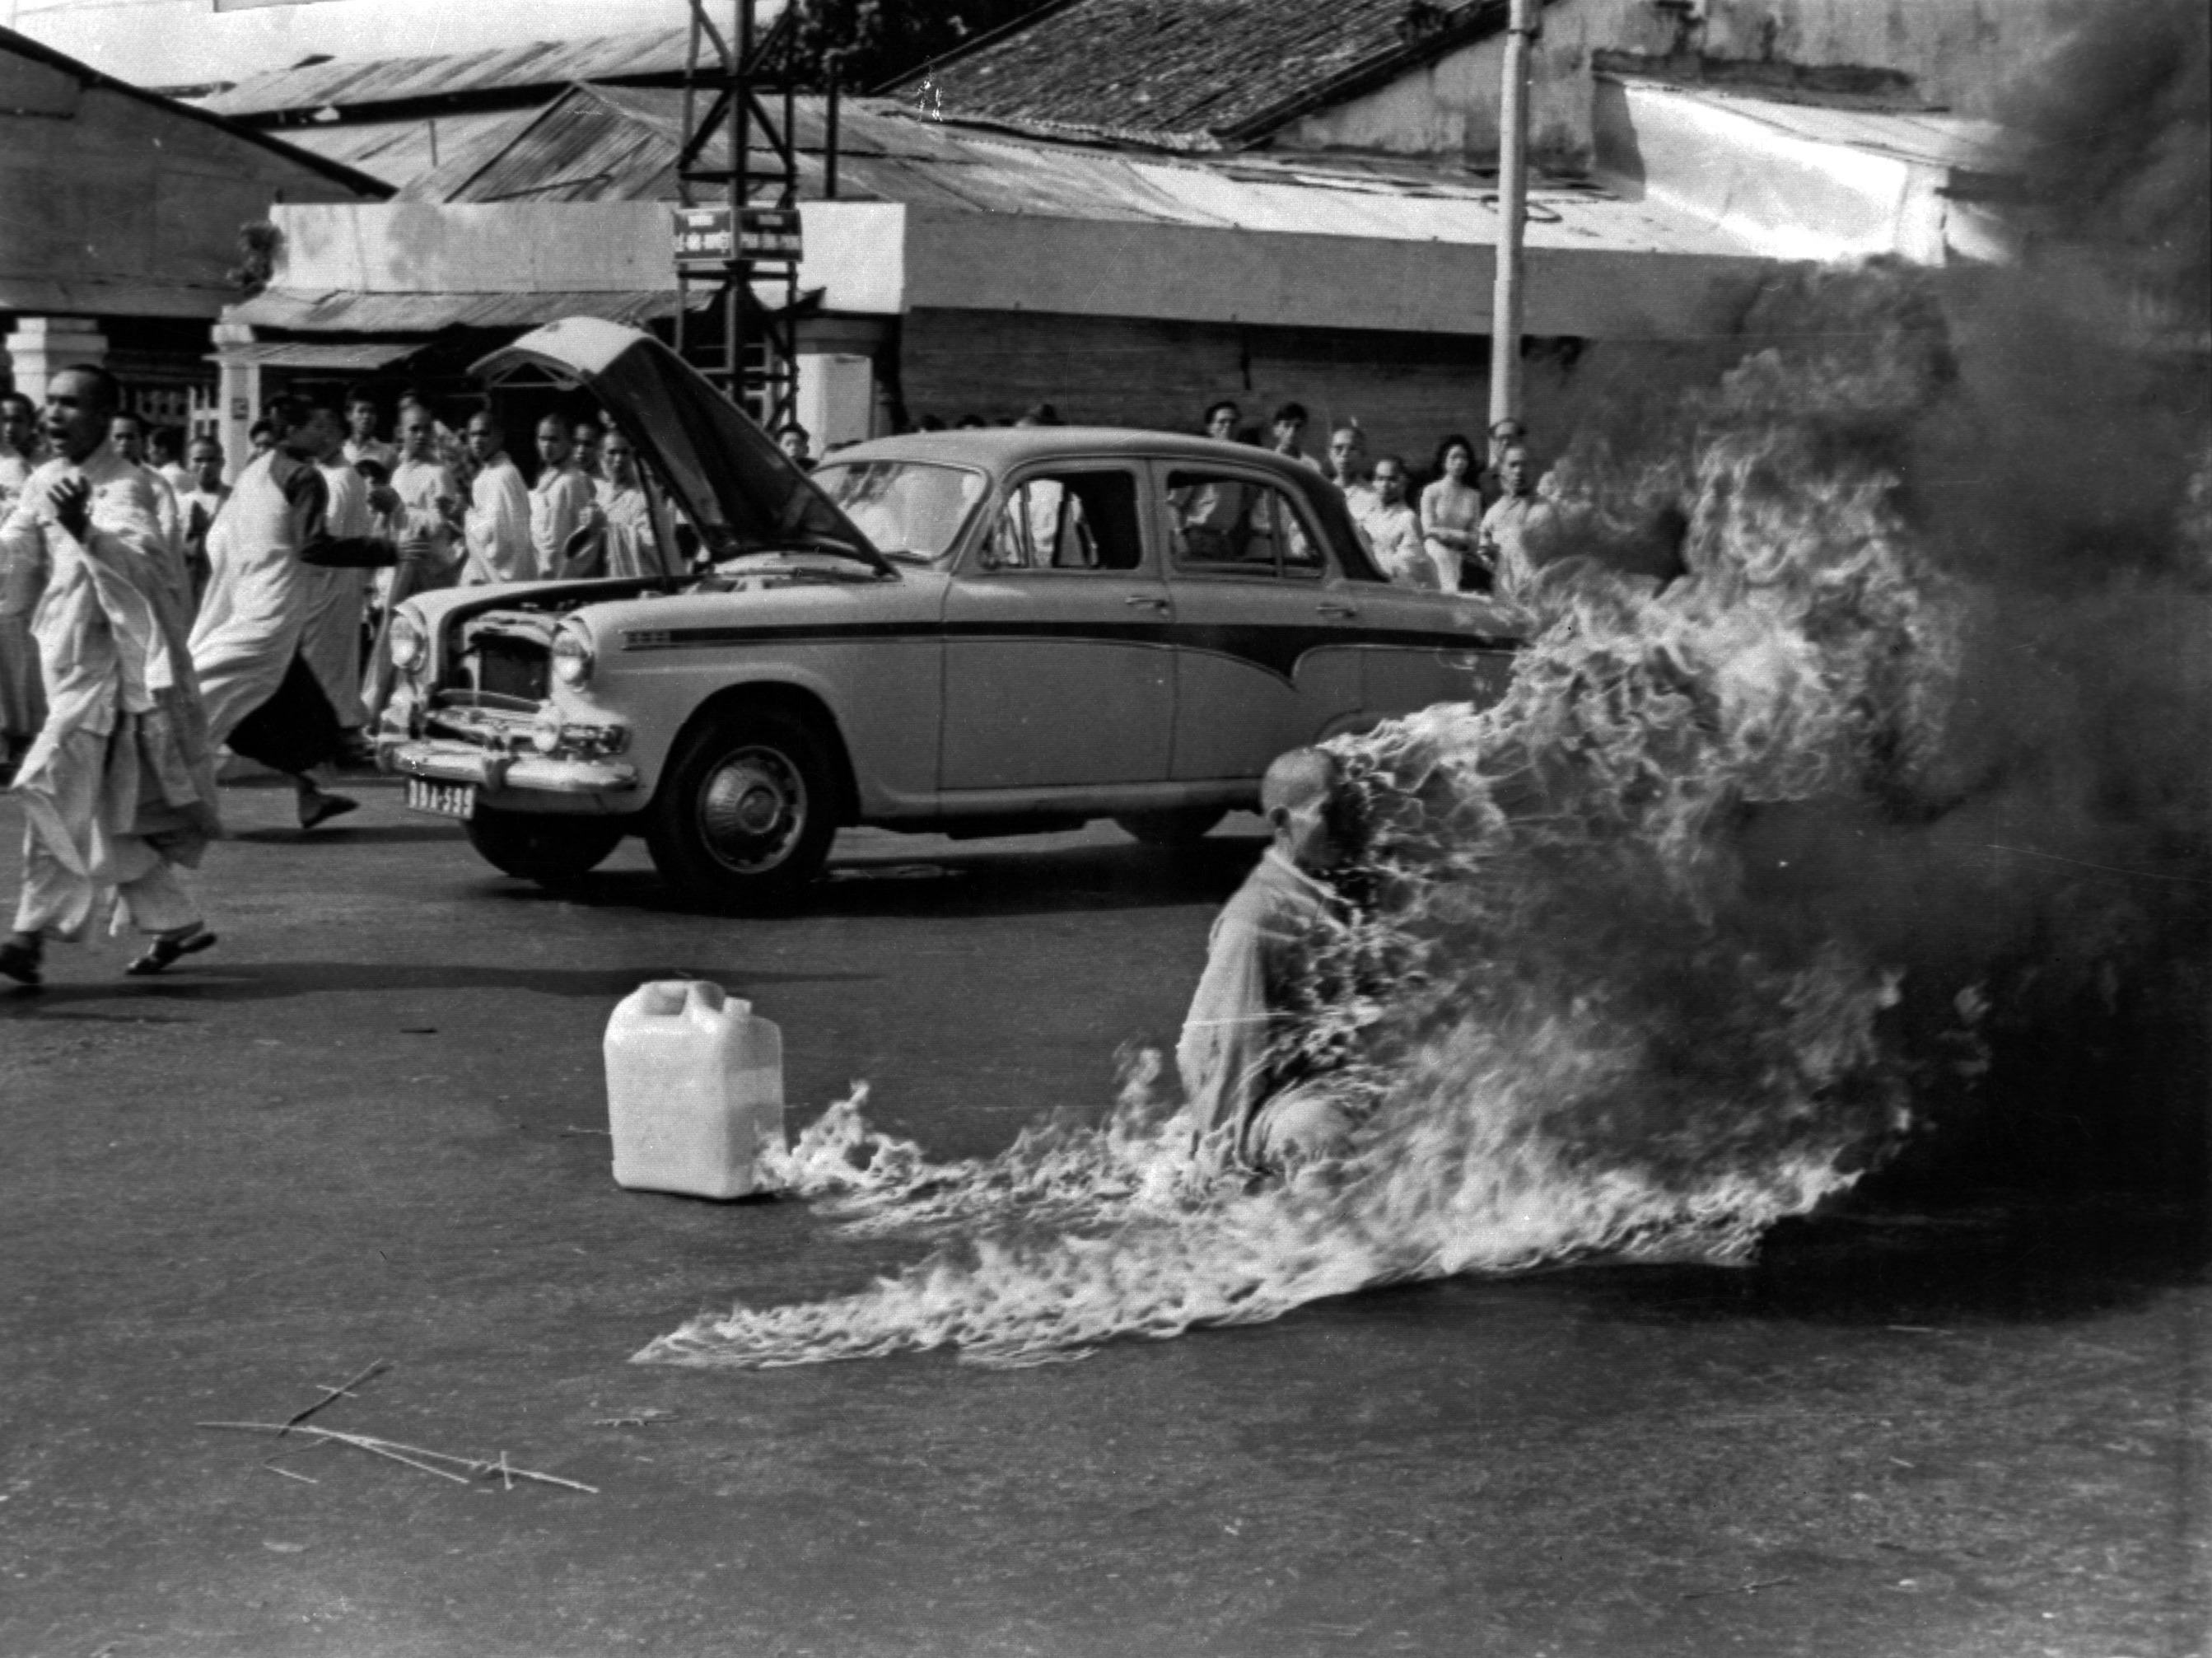 the self immolation of thich quang In 1963, american journalist malcom browne's photograph of the self-immolation  of veteran vietnamese monk, thích quảng đức, on a saigon street sent a.